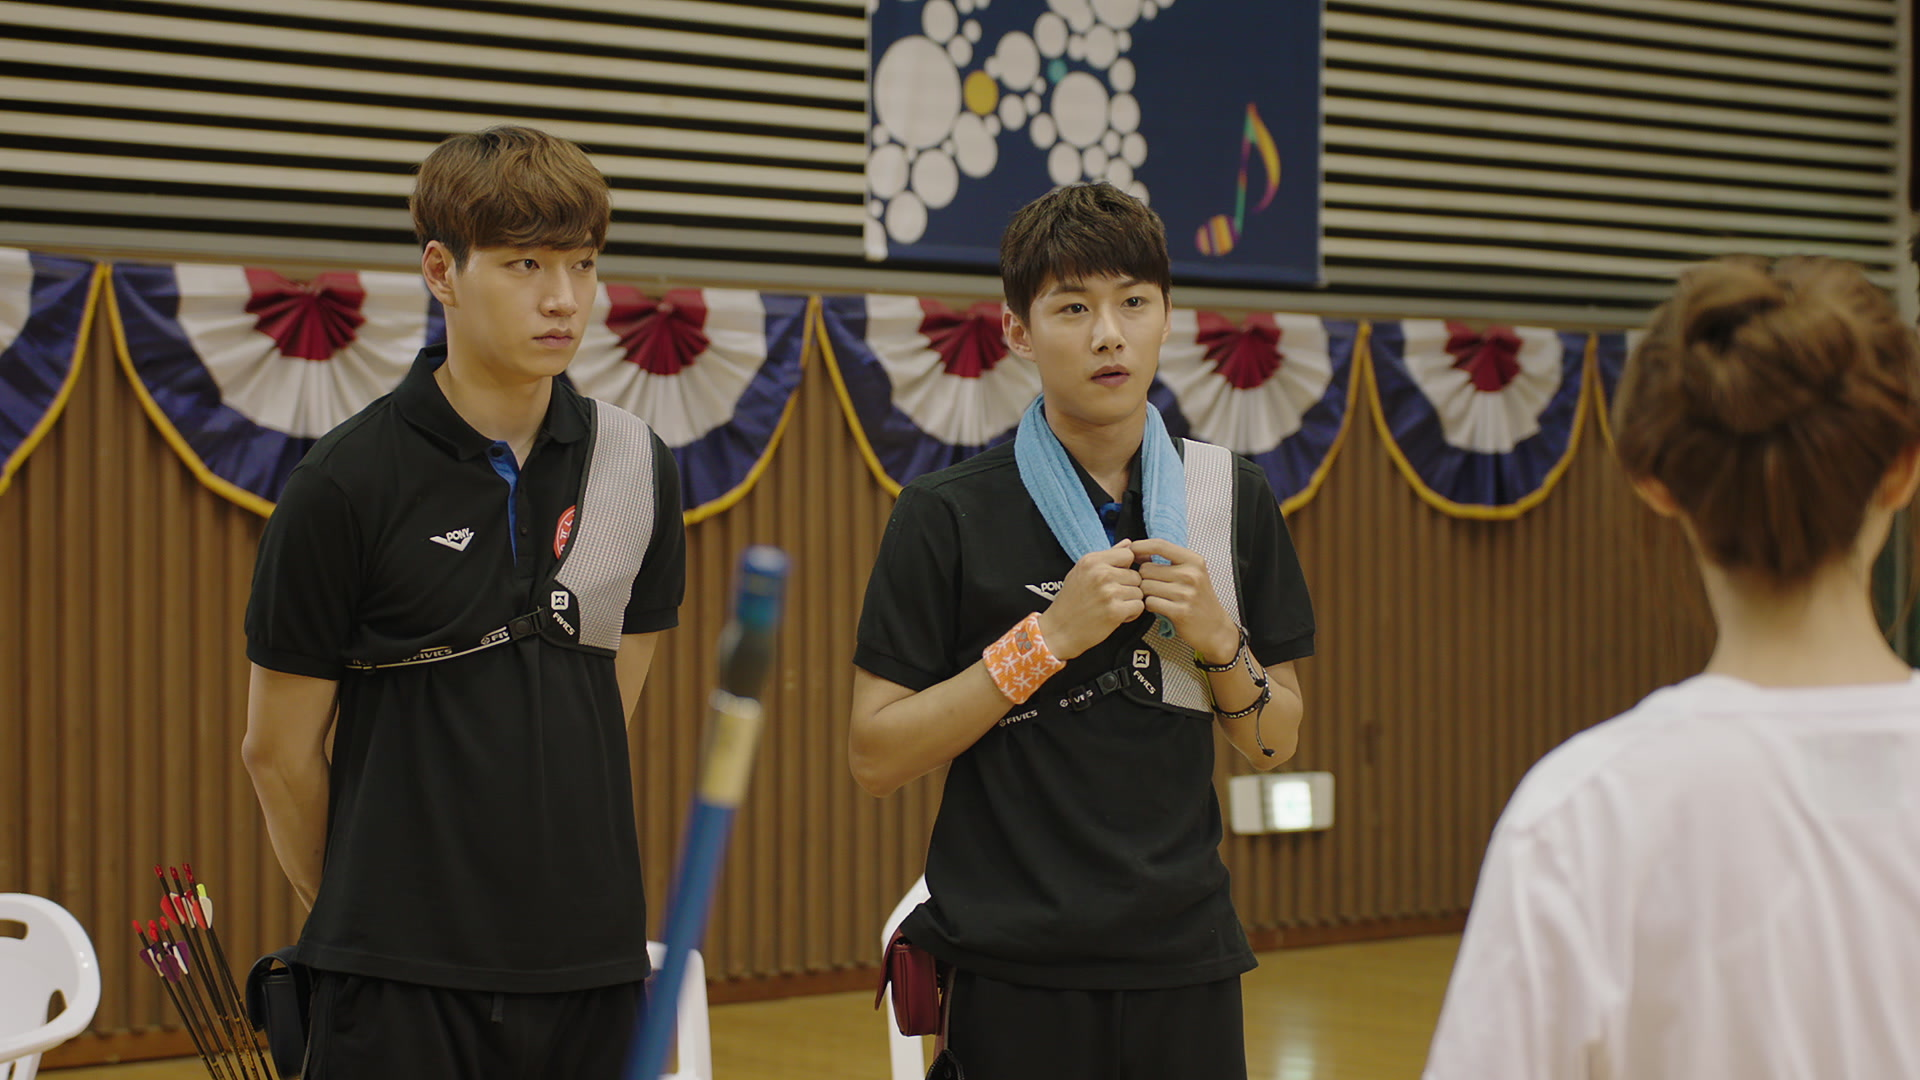 Matching! Boys Archery Episode 2